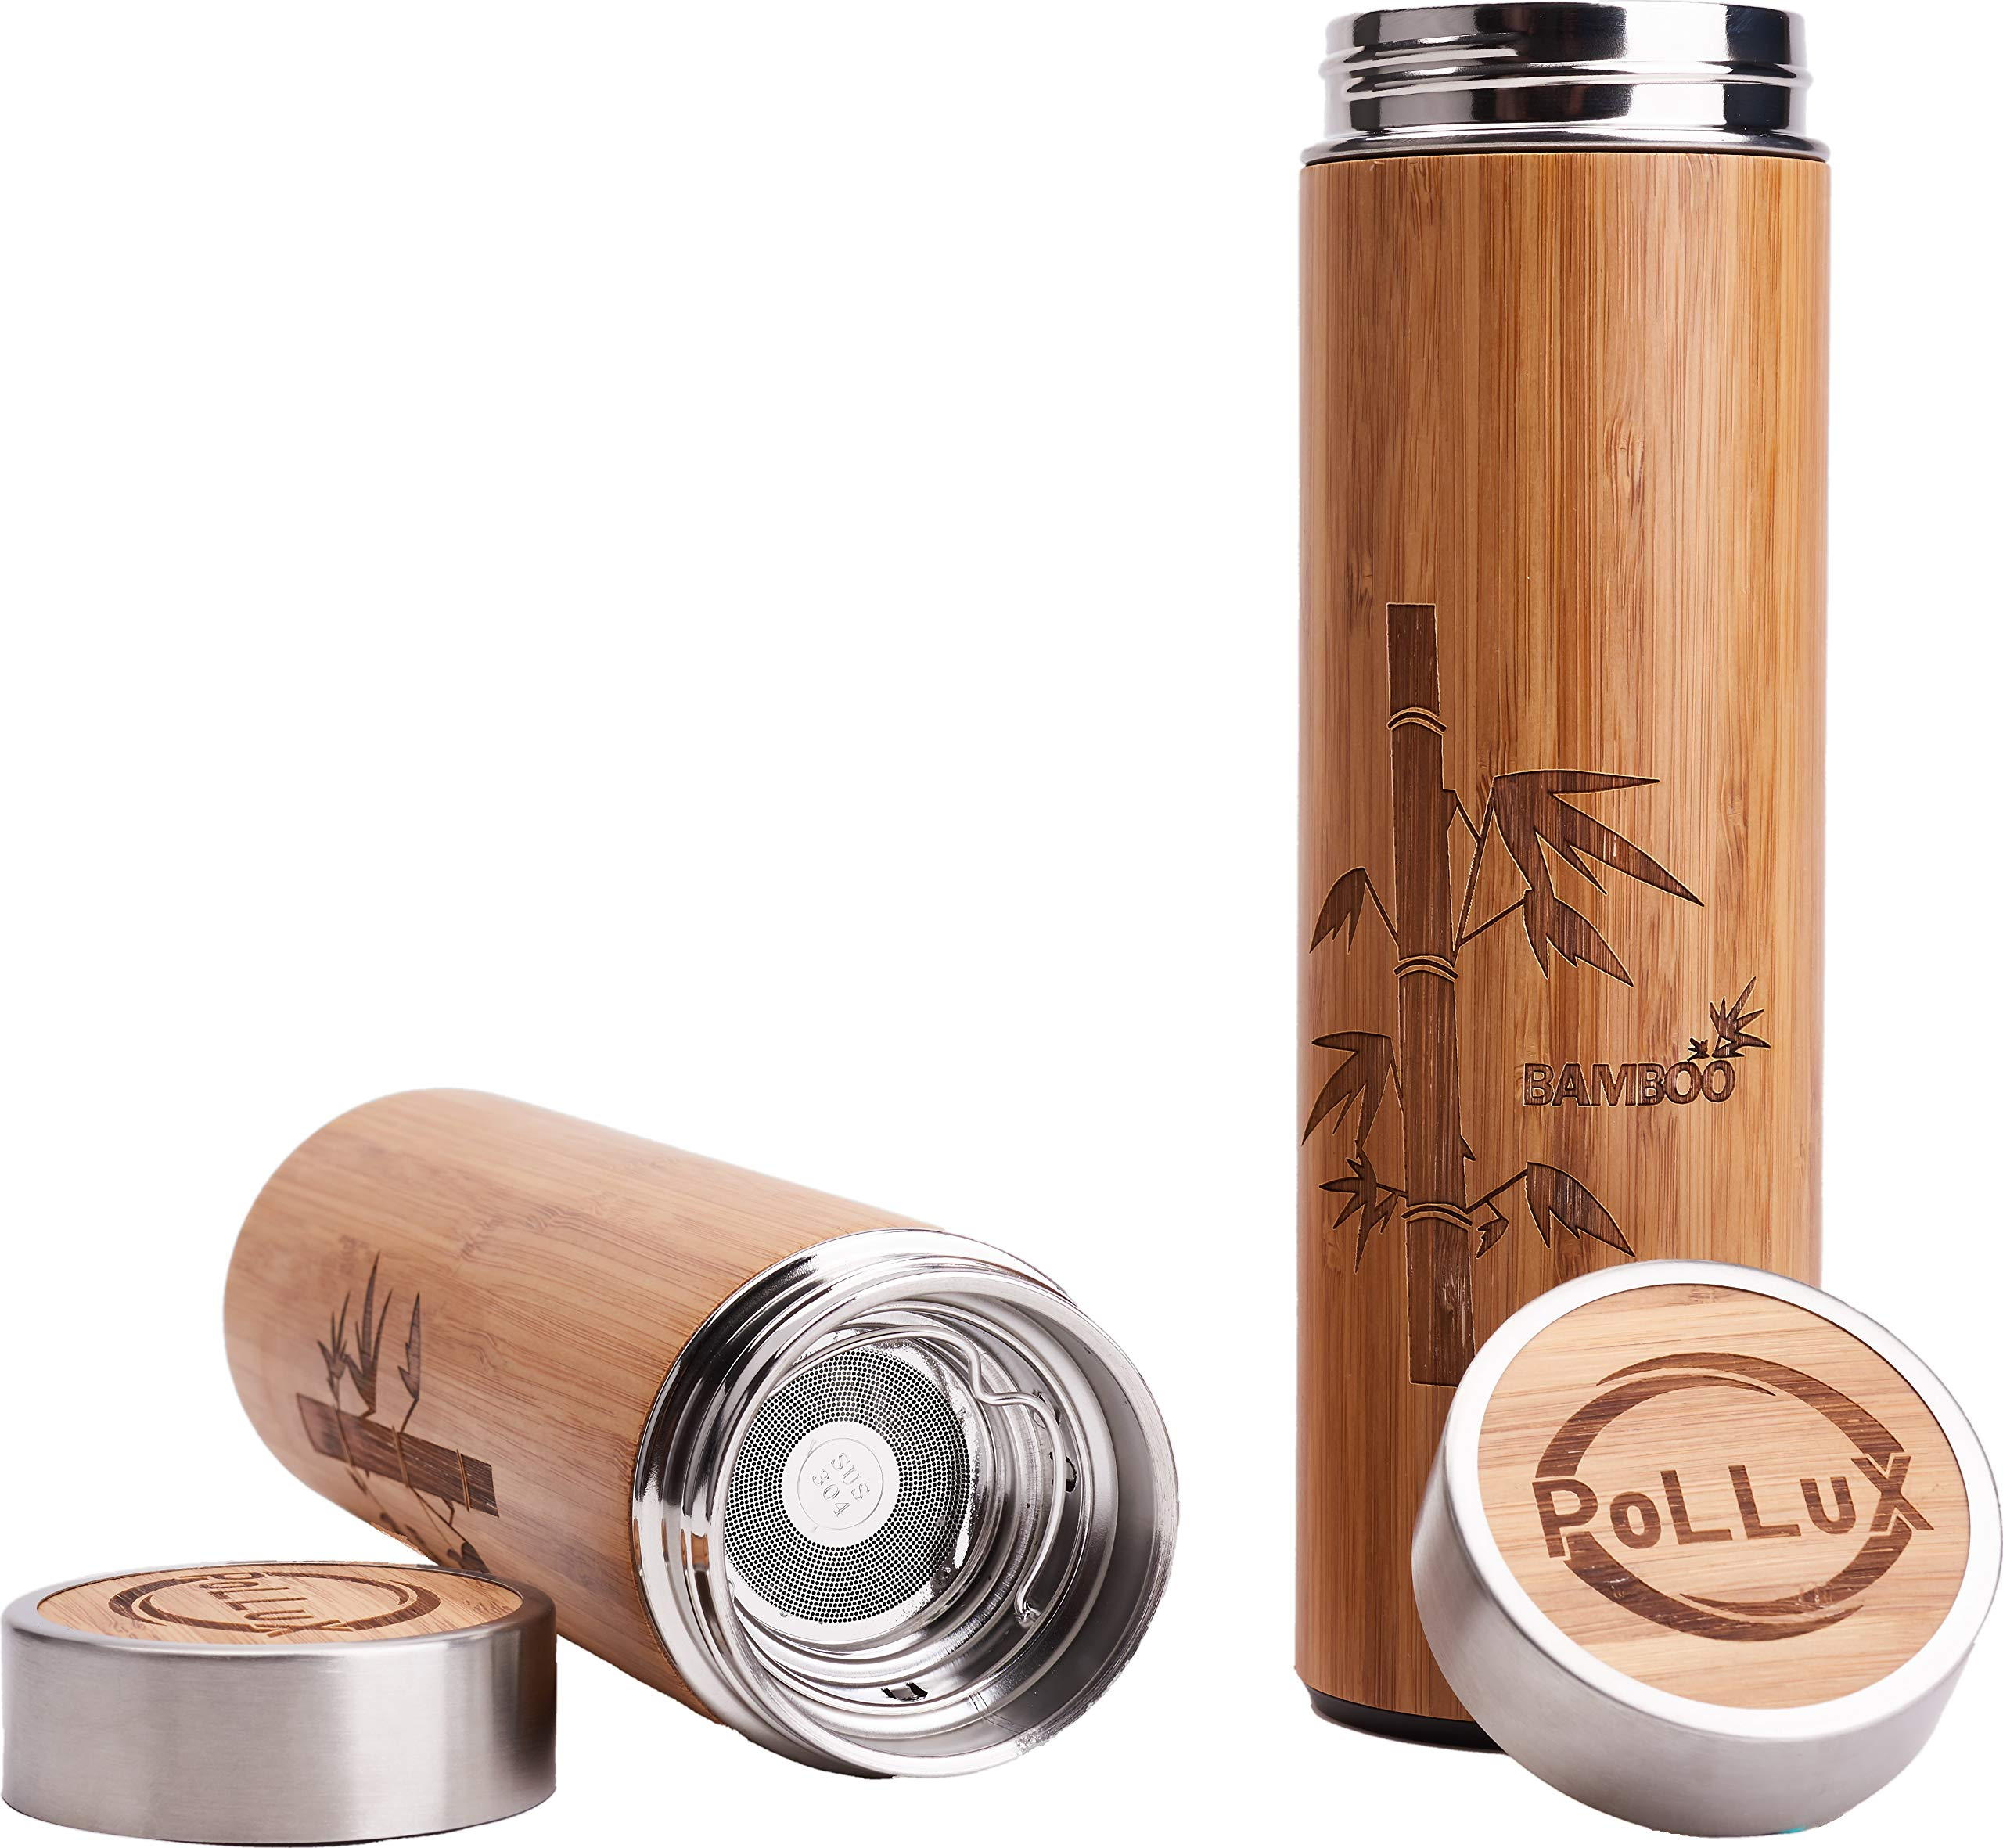 PoLLux Bamboo Travel Coffee Mug Double Wall Eco Thermos for Hot and Cold Beverages with Big Stainless Steel Infuser for Coffee or Tea and Fruit, Large Size 16oz